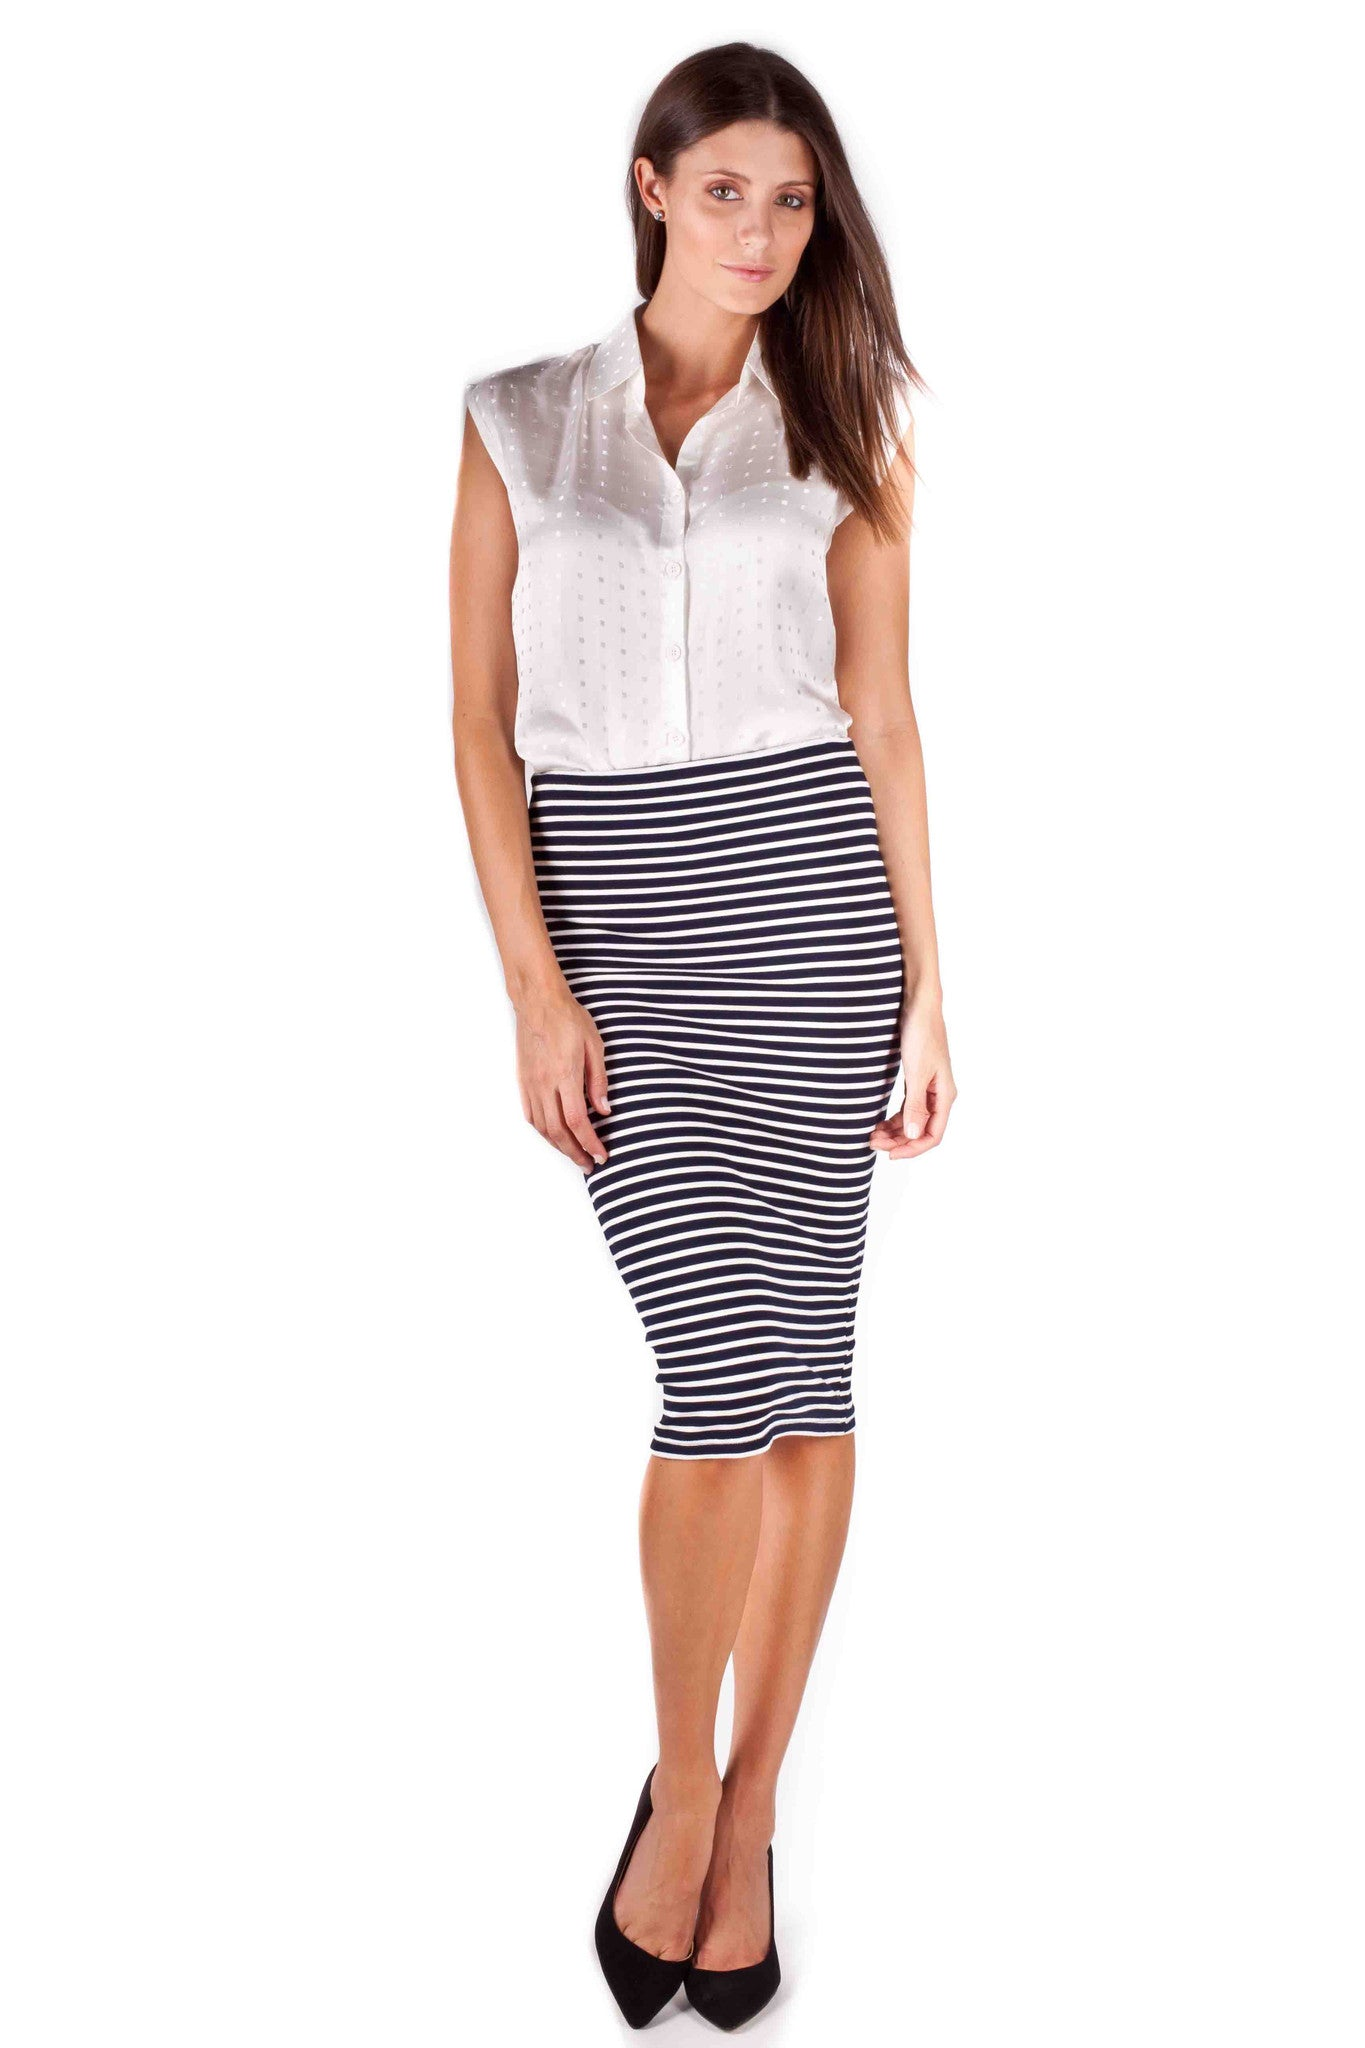 Between The Lines Pencil Skirt